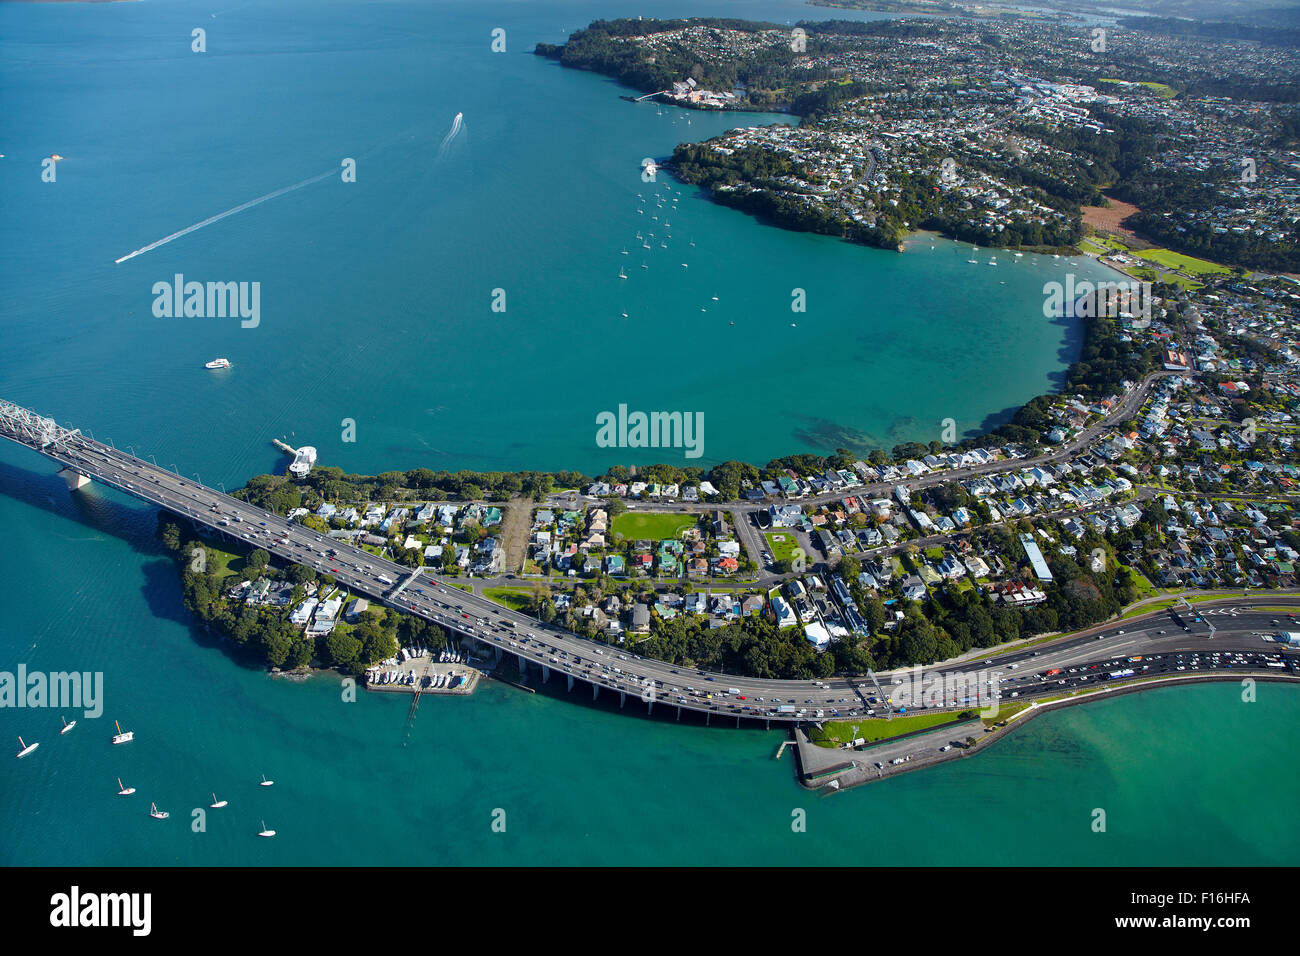 Northcote Point, Little Shoal Bay, Auckland Harbour Bridge approach, and Waitemata Harbour, Auckland, New Zealand - Stock Image